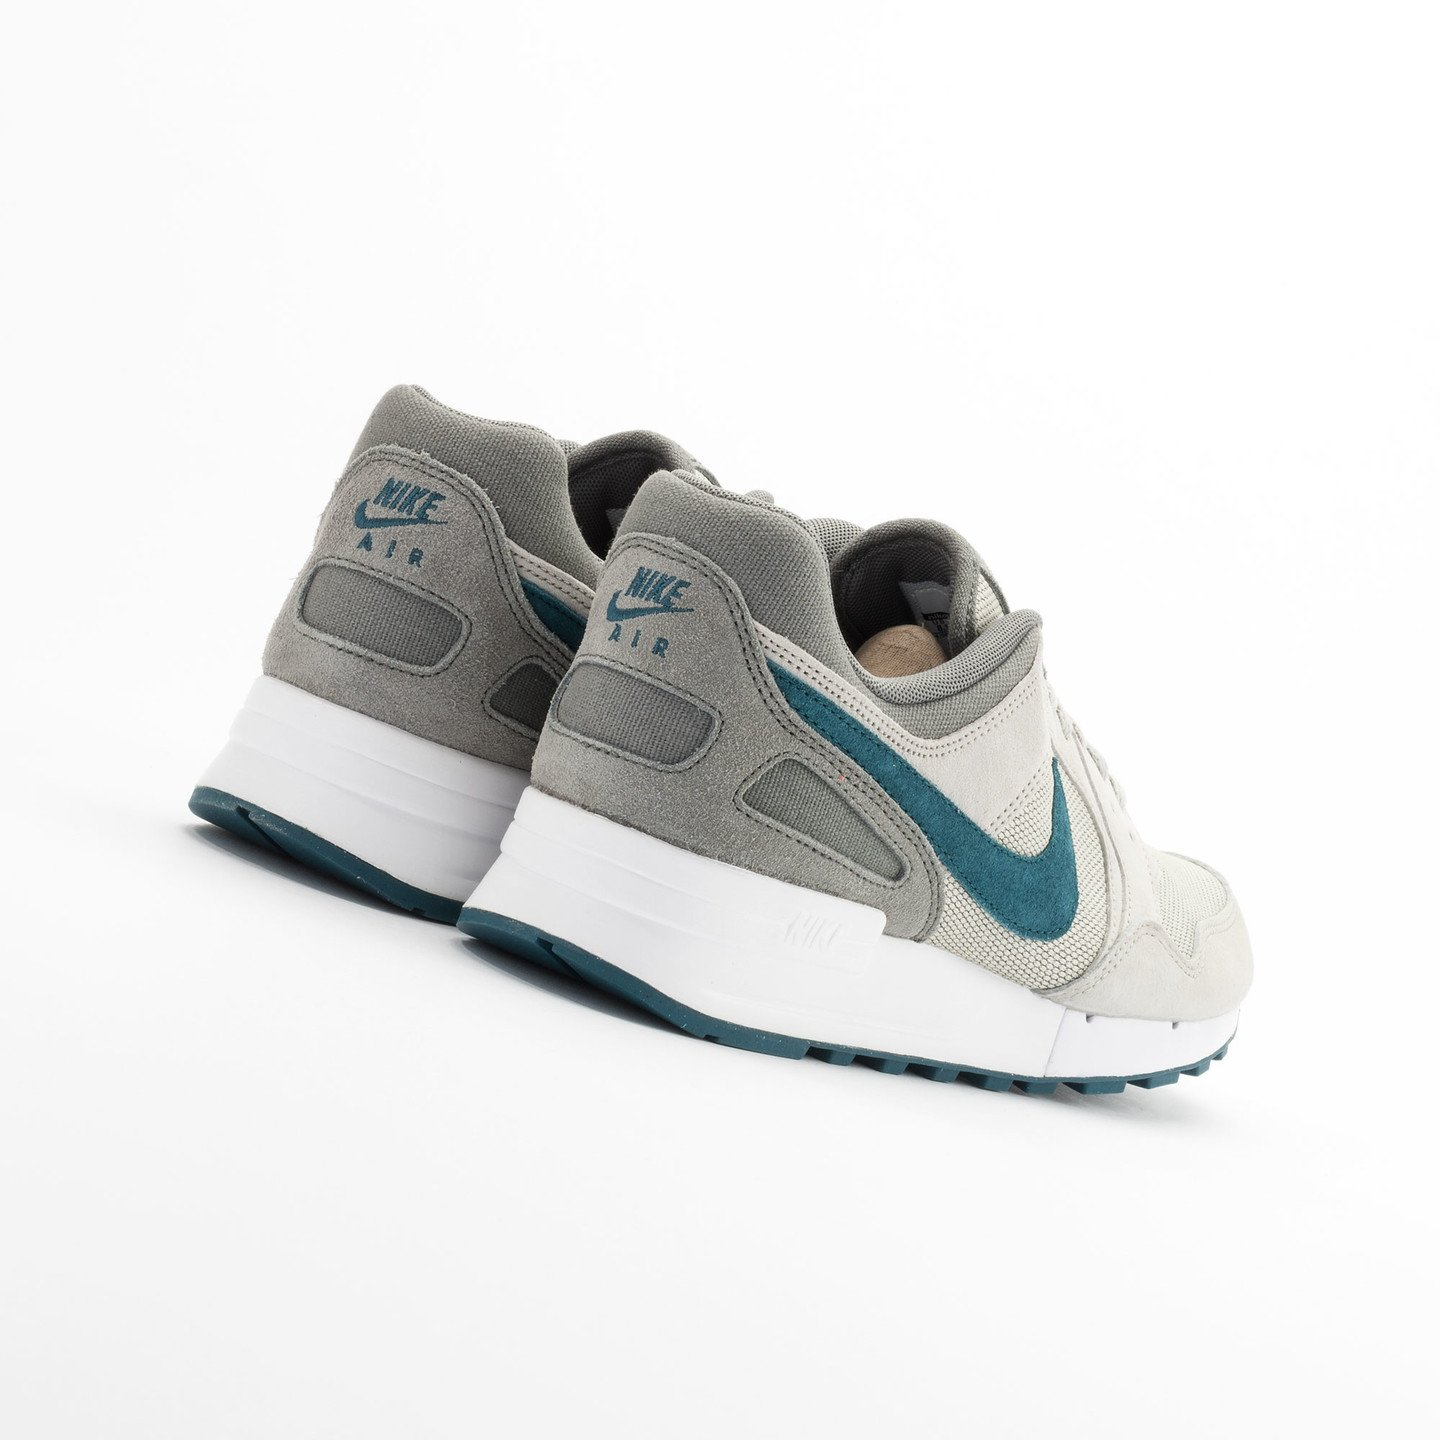 Nike Air Pegasus 89 Premium Lunar Grey / Teal - Tumbled Grey 724269-030-45